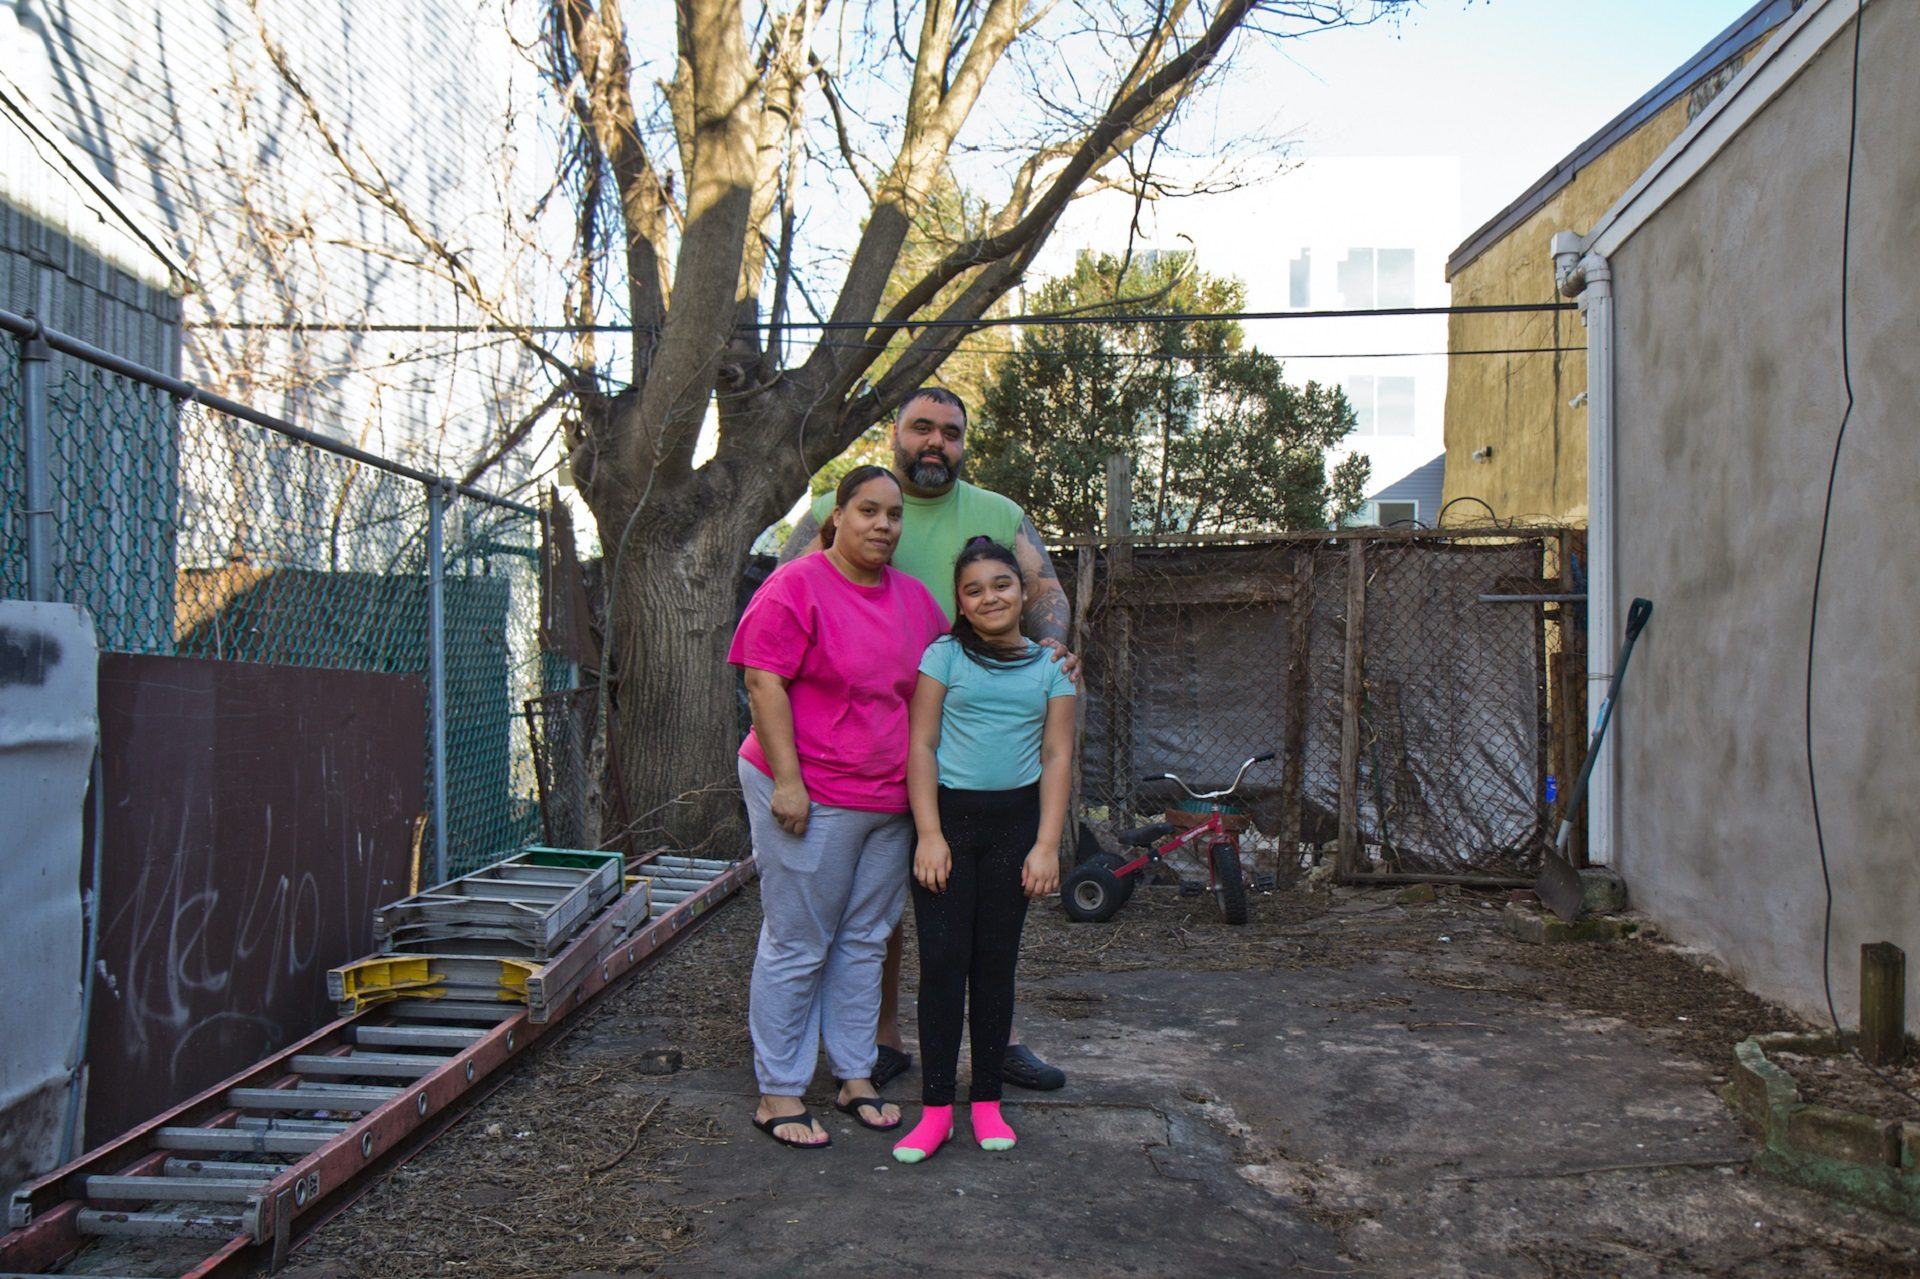 Adamarie Baez and Daniel Ortiz with their ten year-old daughter Kaylee in the lot next to their home they've maintained and gardened in for years.